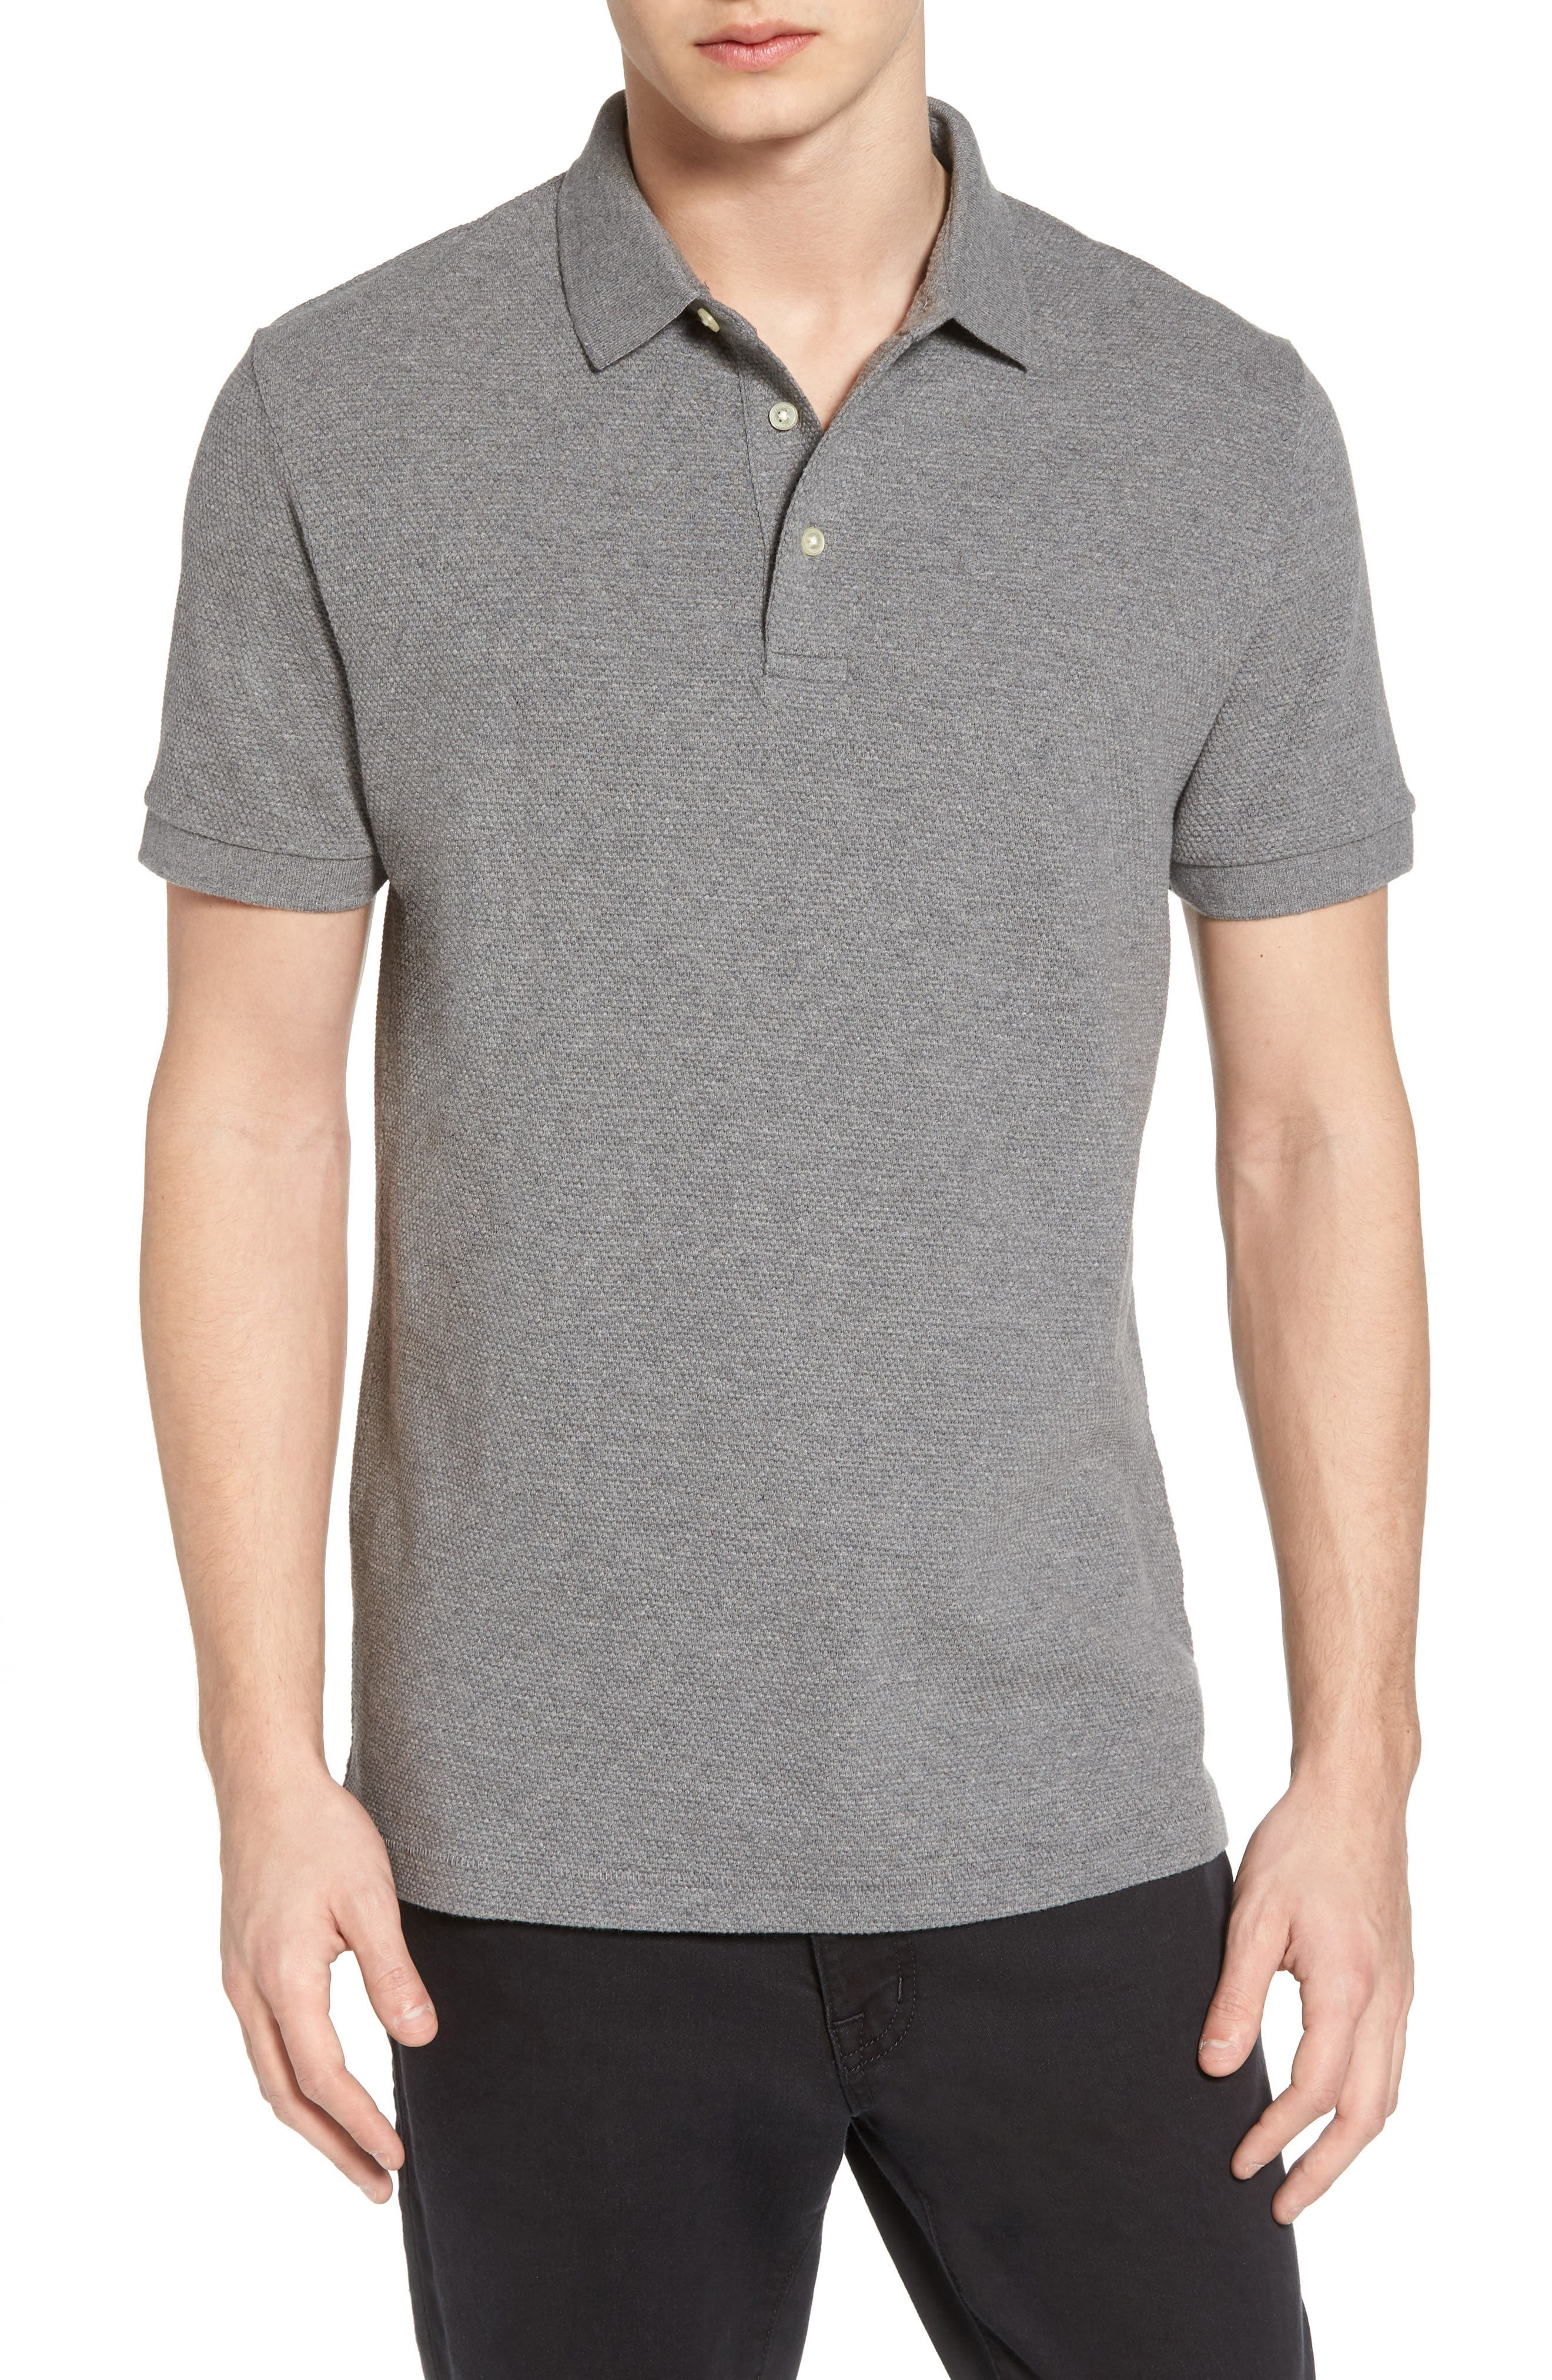 FRENCH CONNECTION Ampthill Pebble Knit Polo, Main, color, 020